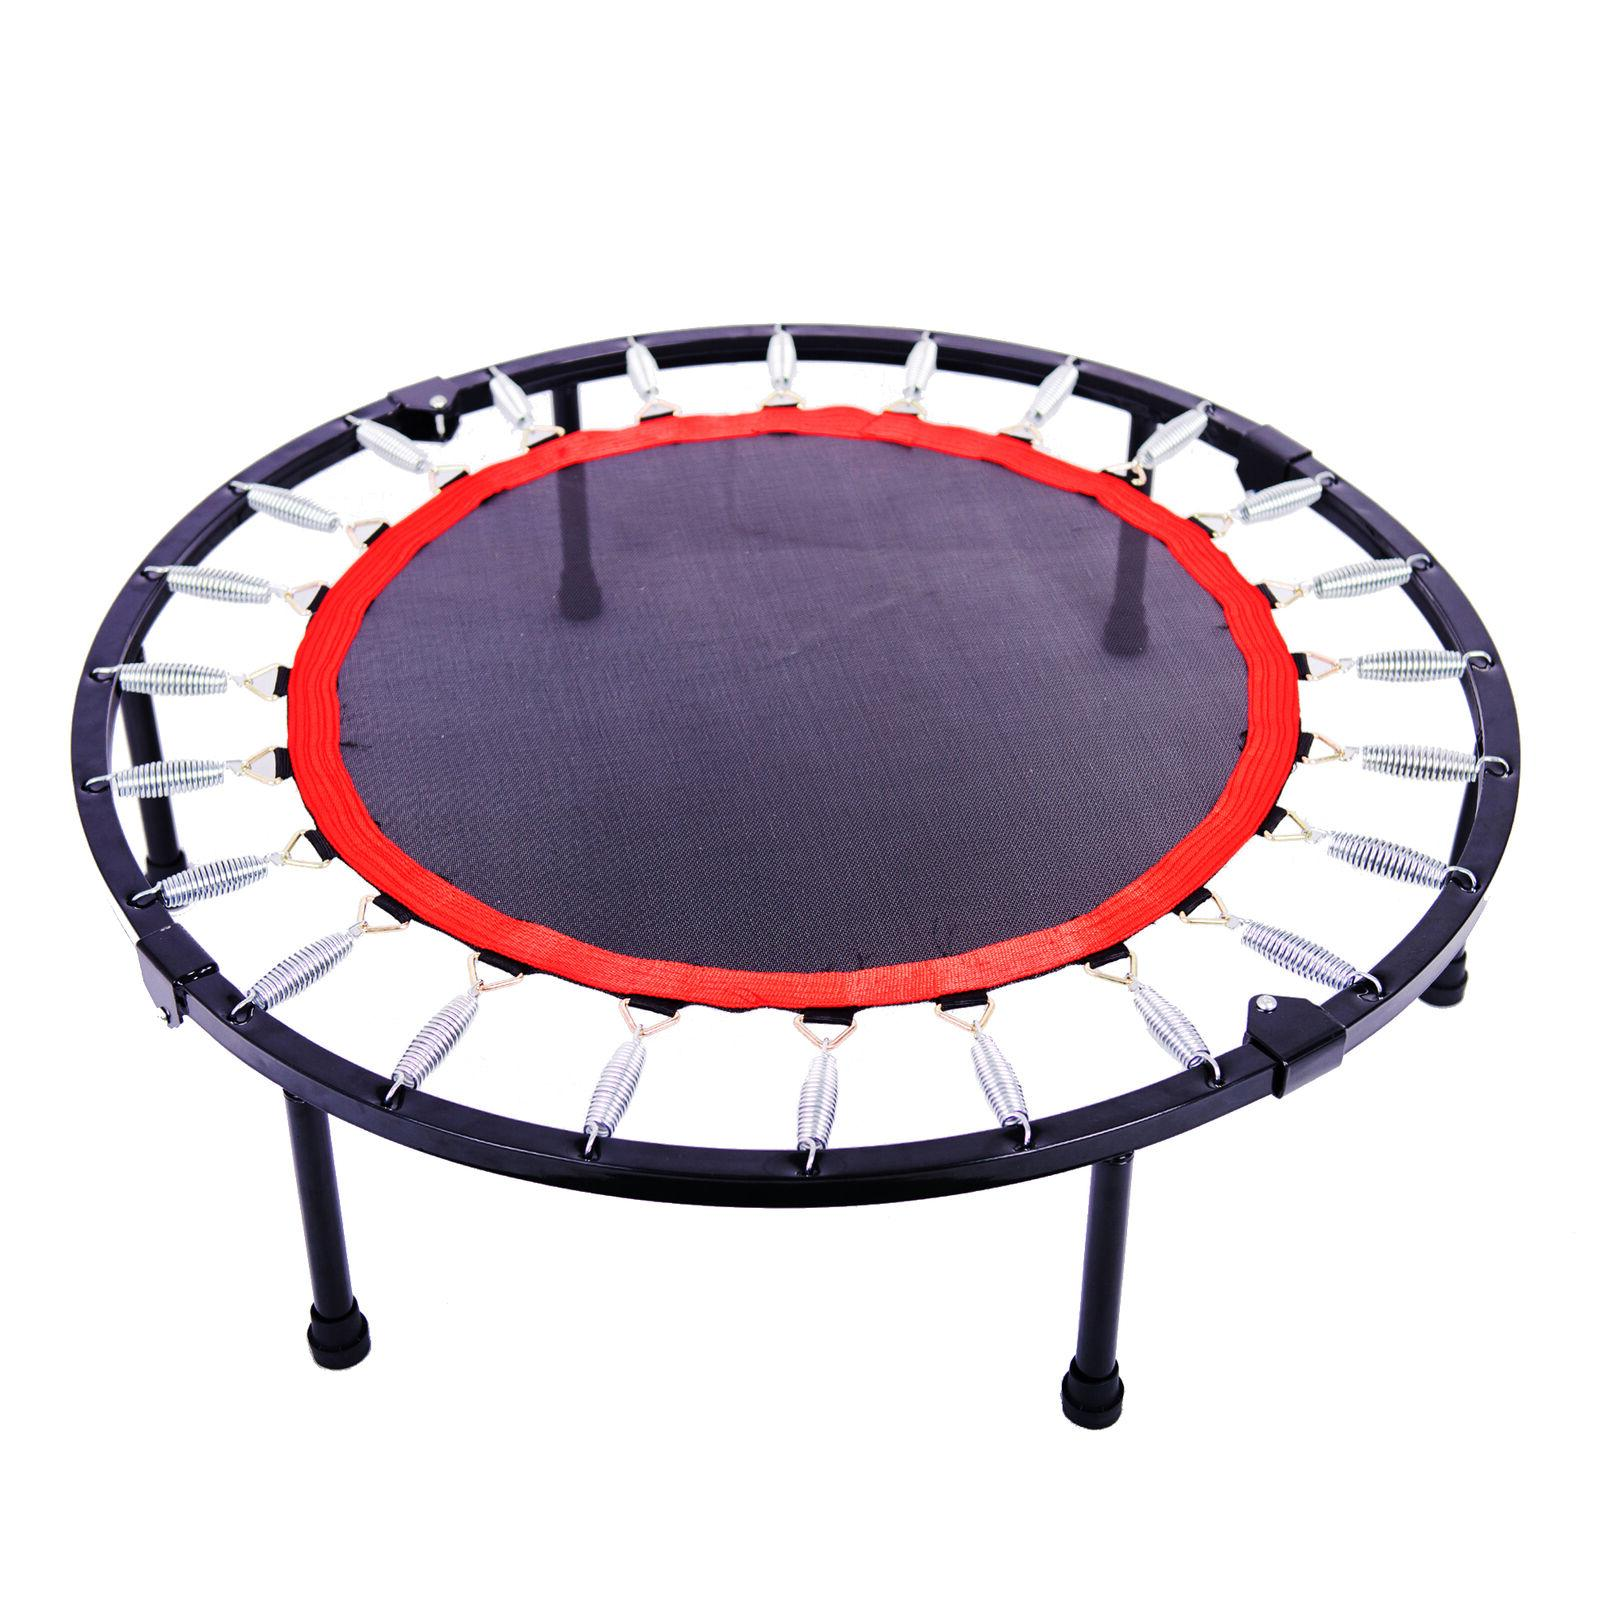 40 Exercise Trampoline Indoor with Safety Pad